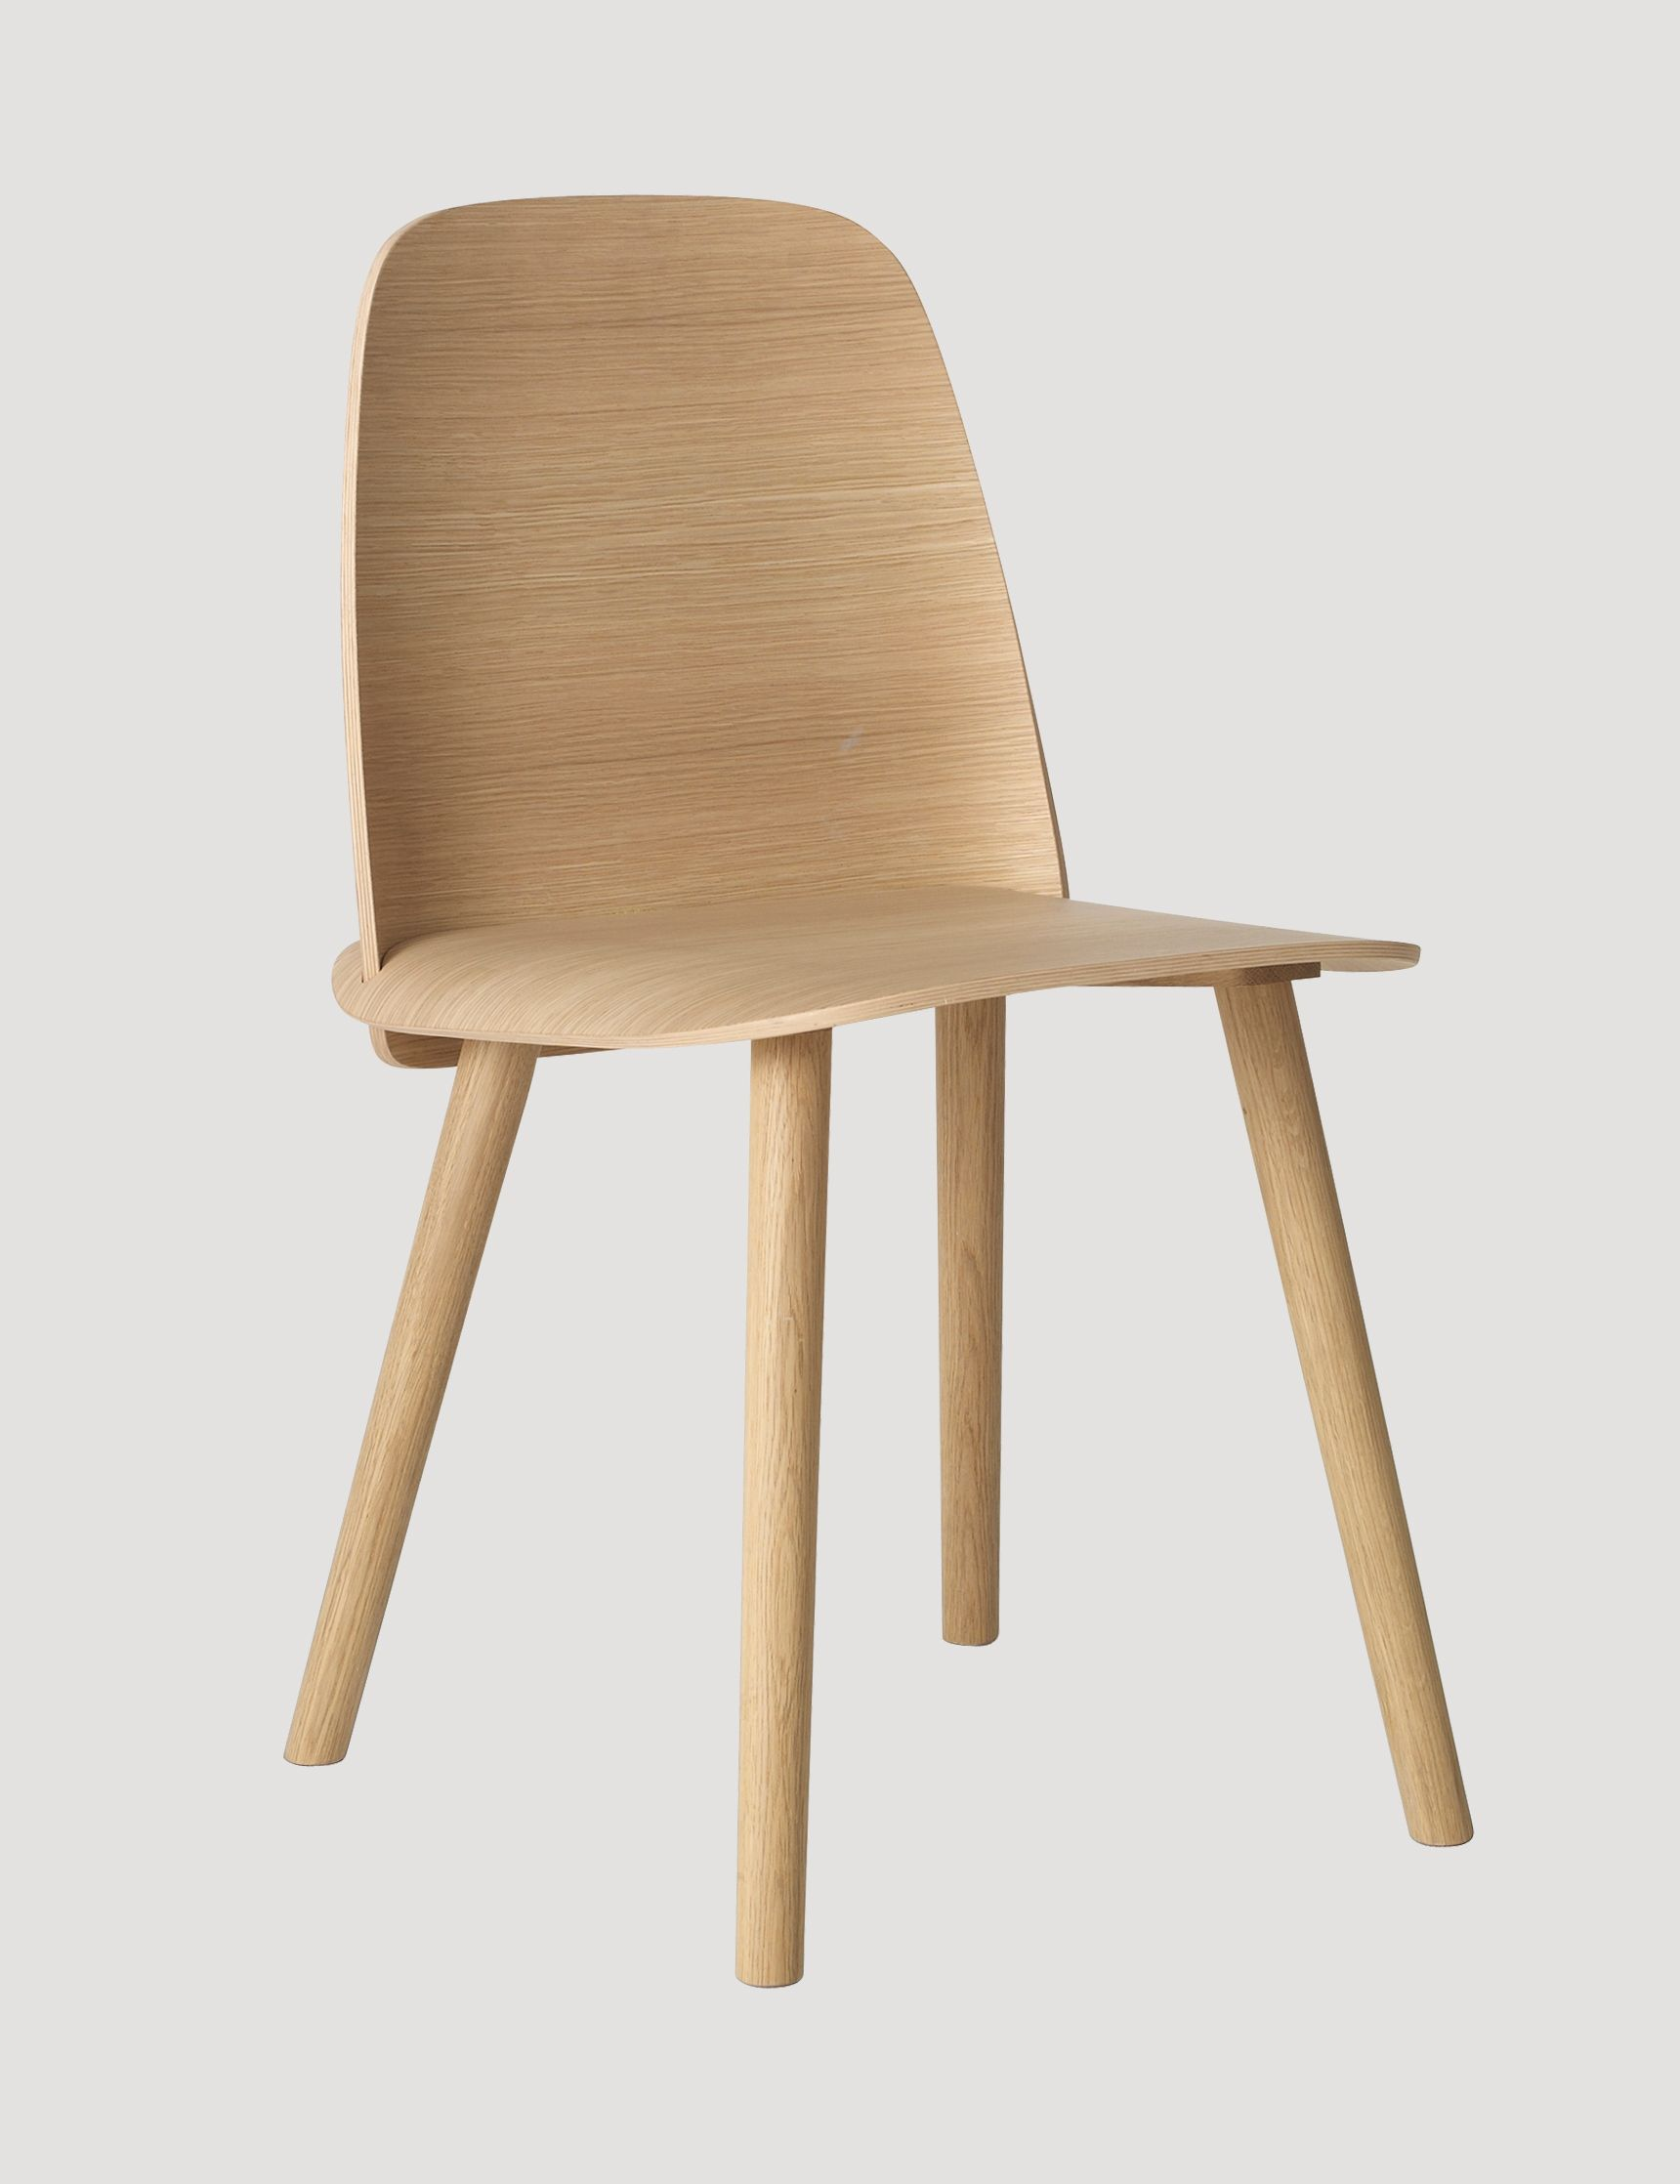 the nerd chair is a modern nordic take on the iconic all wood chair rh pinterest com